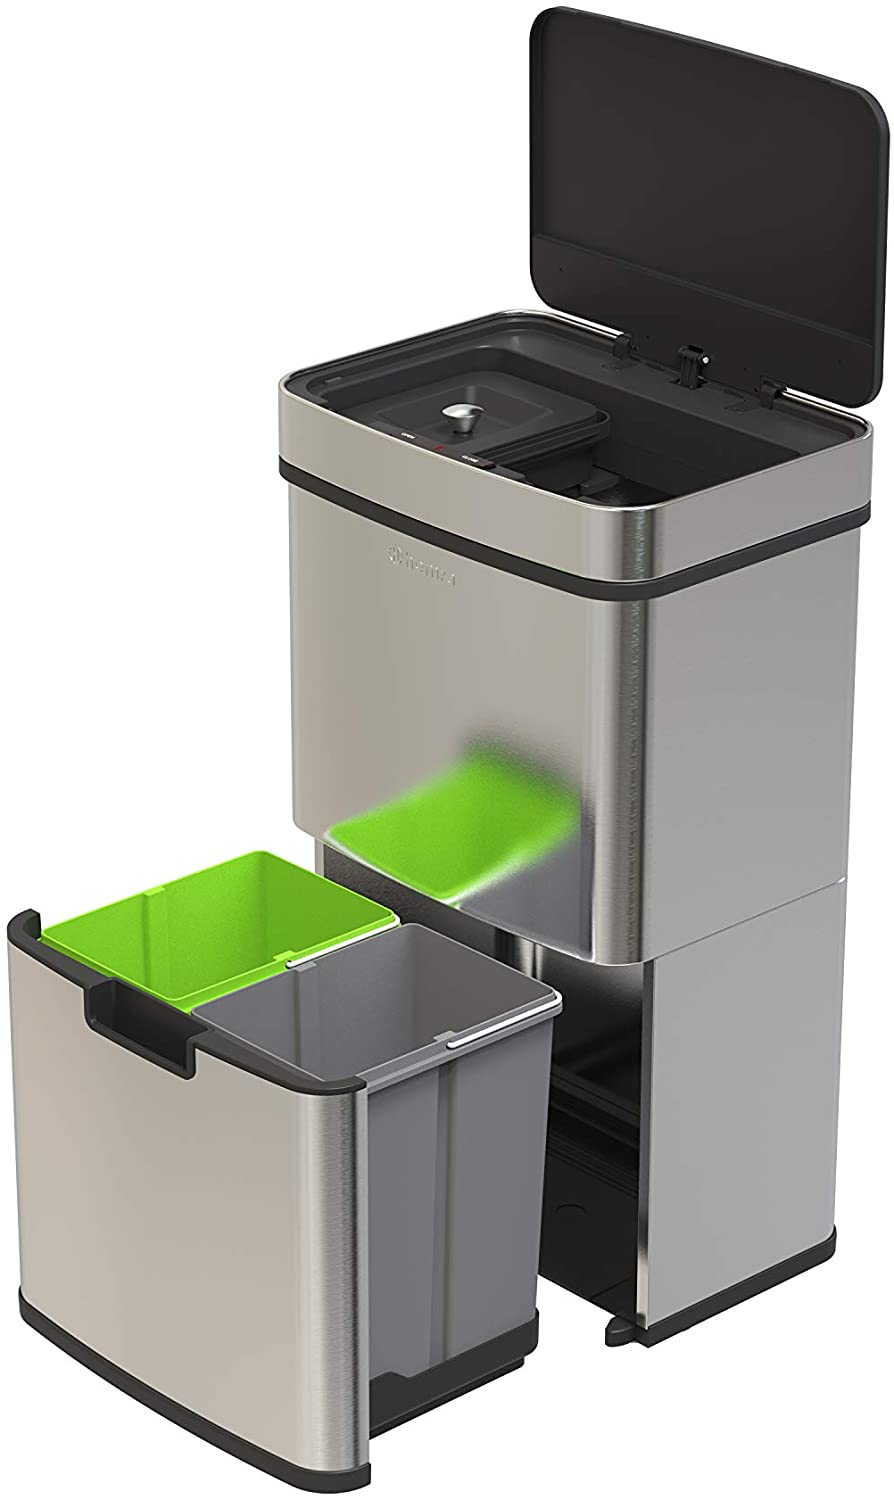 72L Recycling bin with sensor